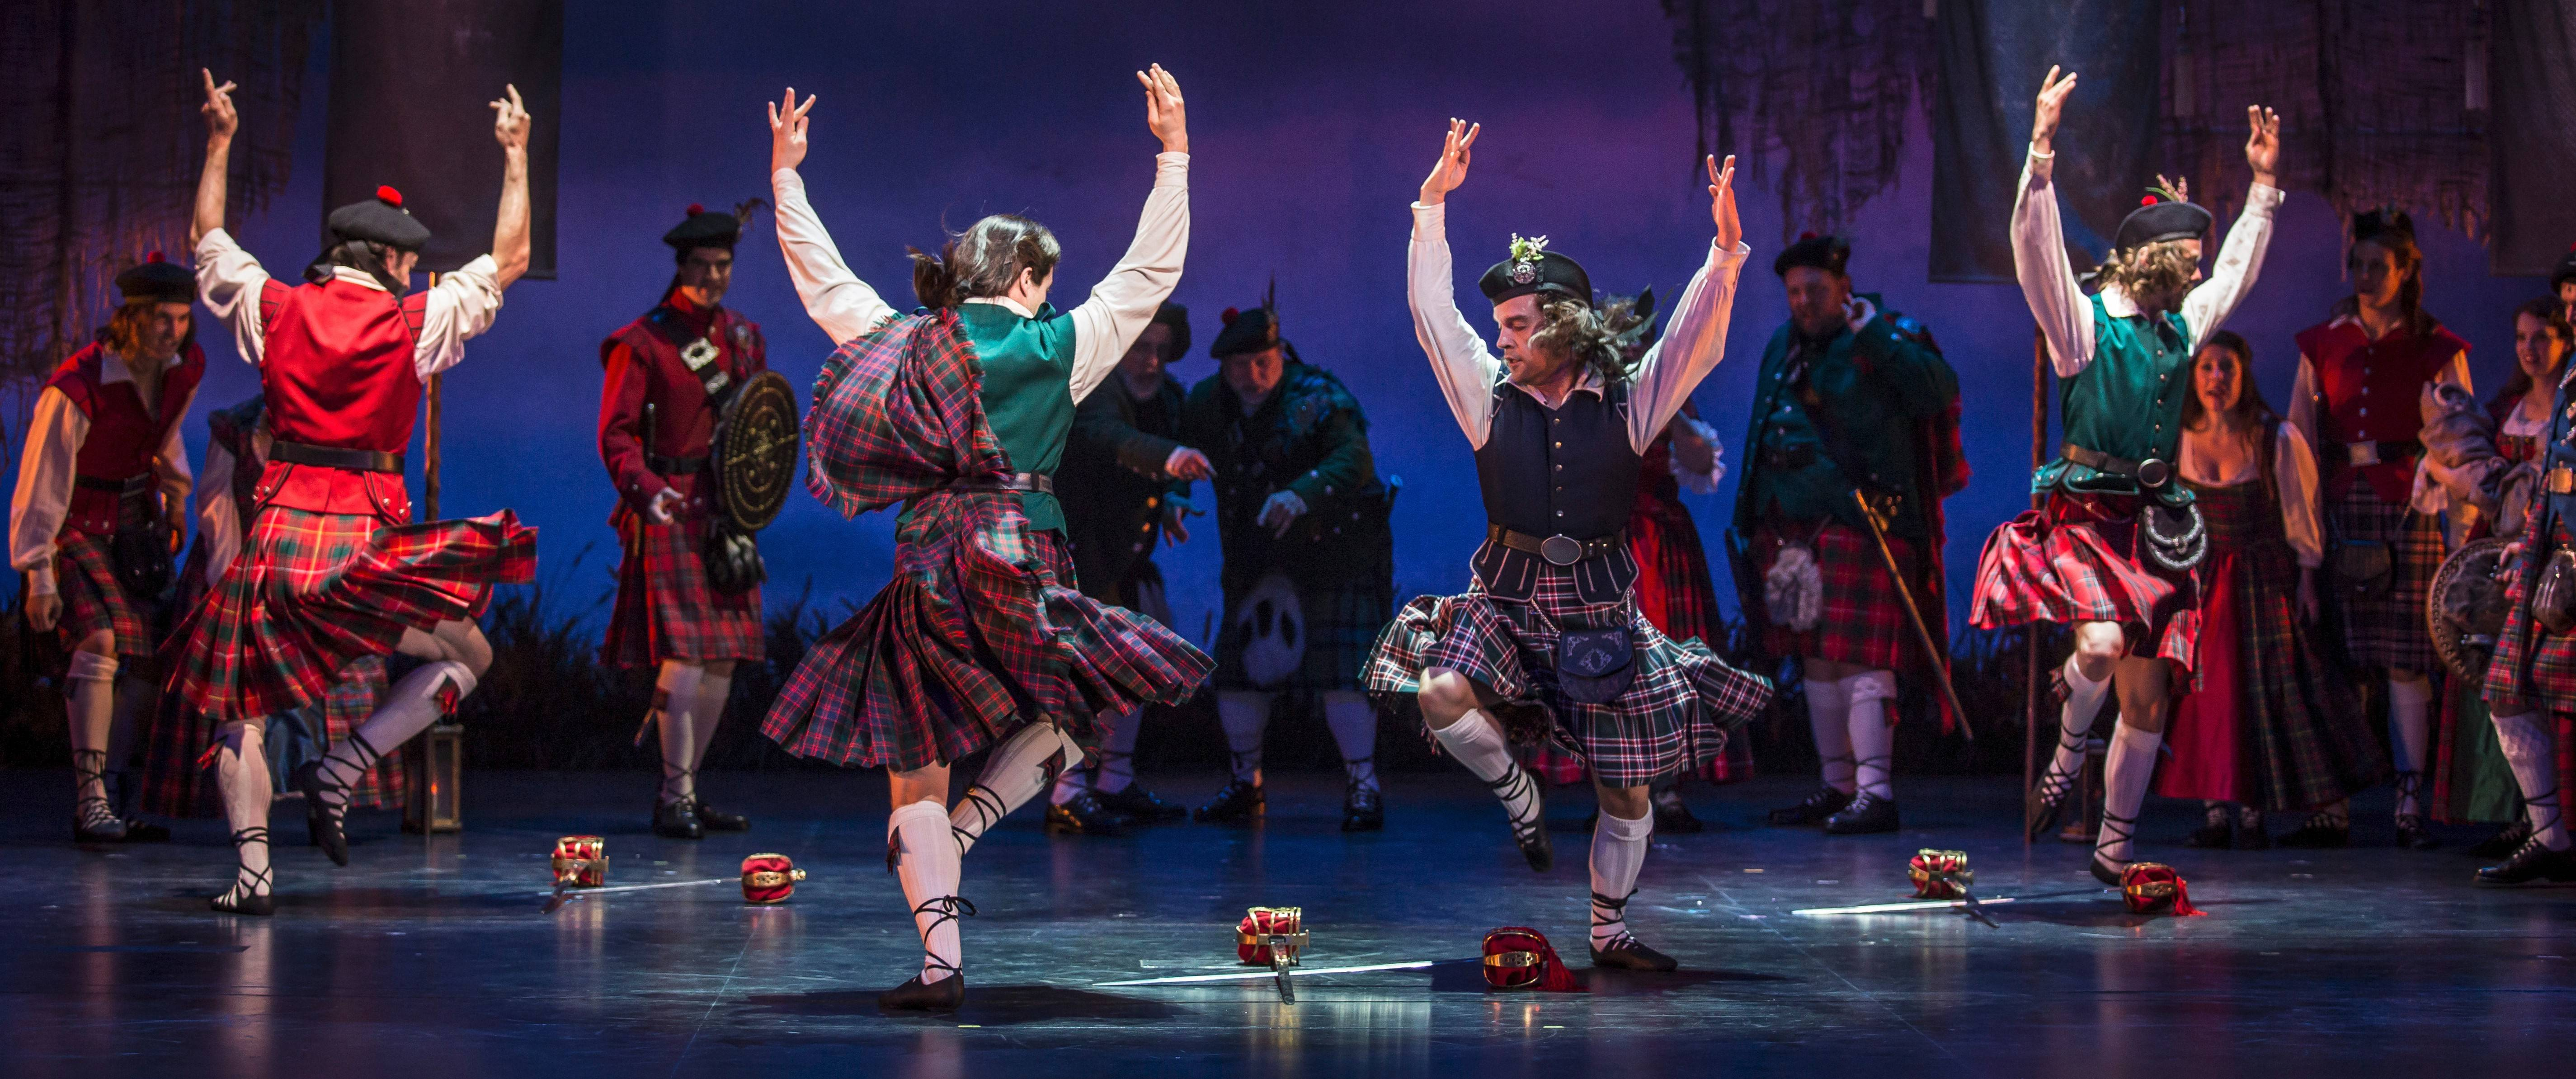 "Goodman Theatre's revival of the Alan J. Lerner/Frederick Loewe musical ""Brigadoon,"" the first major revival in 34 years, received nine Joseph Jefferson Award nominations, including two for director/choreographer Rachel Rockwell in her Goodman directing debut."